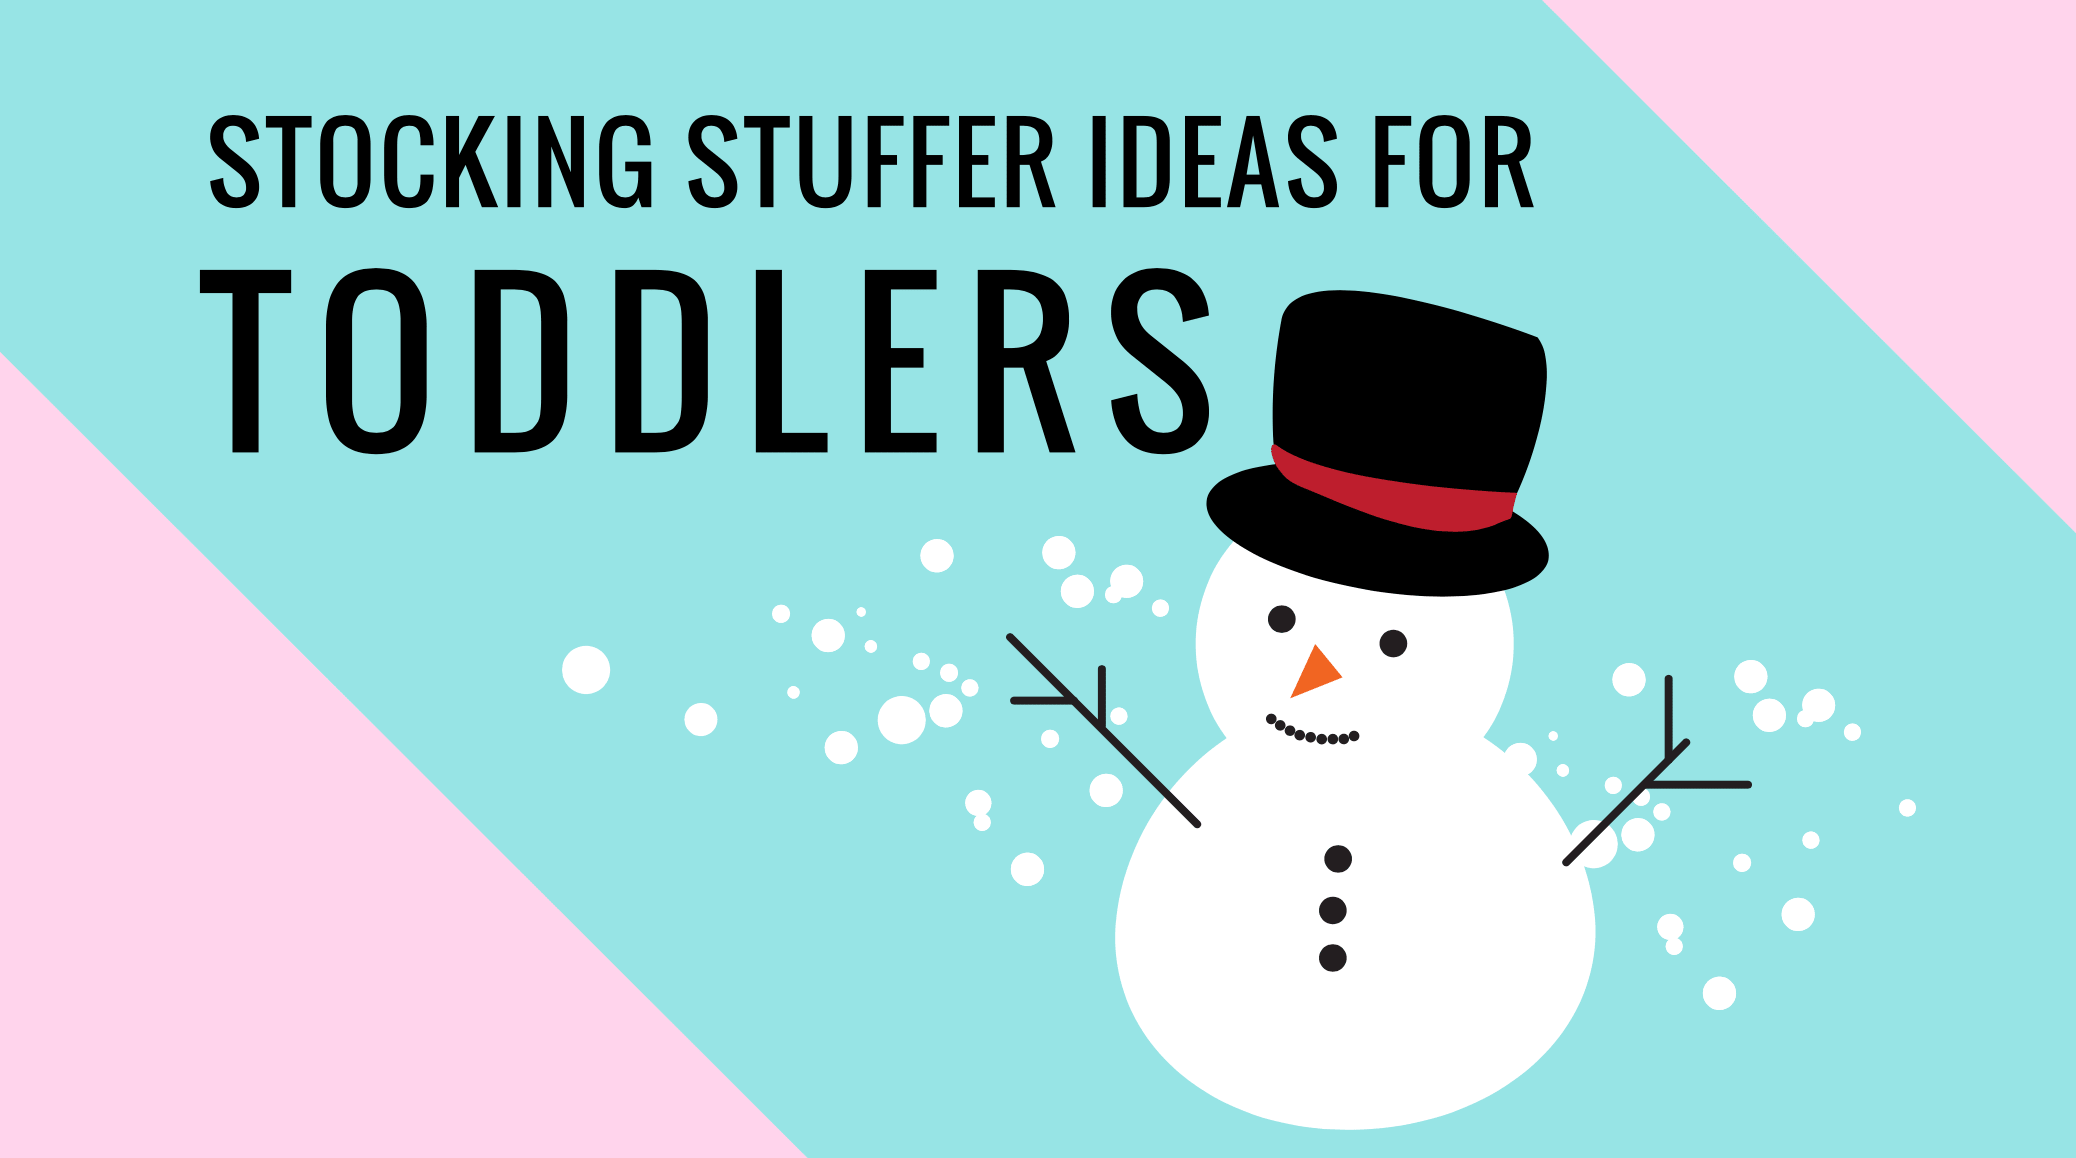 Stocking Stuffer Ideas For Toddlers Stuffers For Stockings